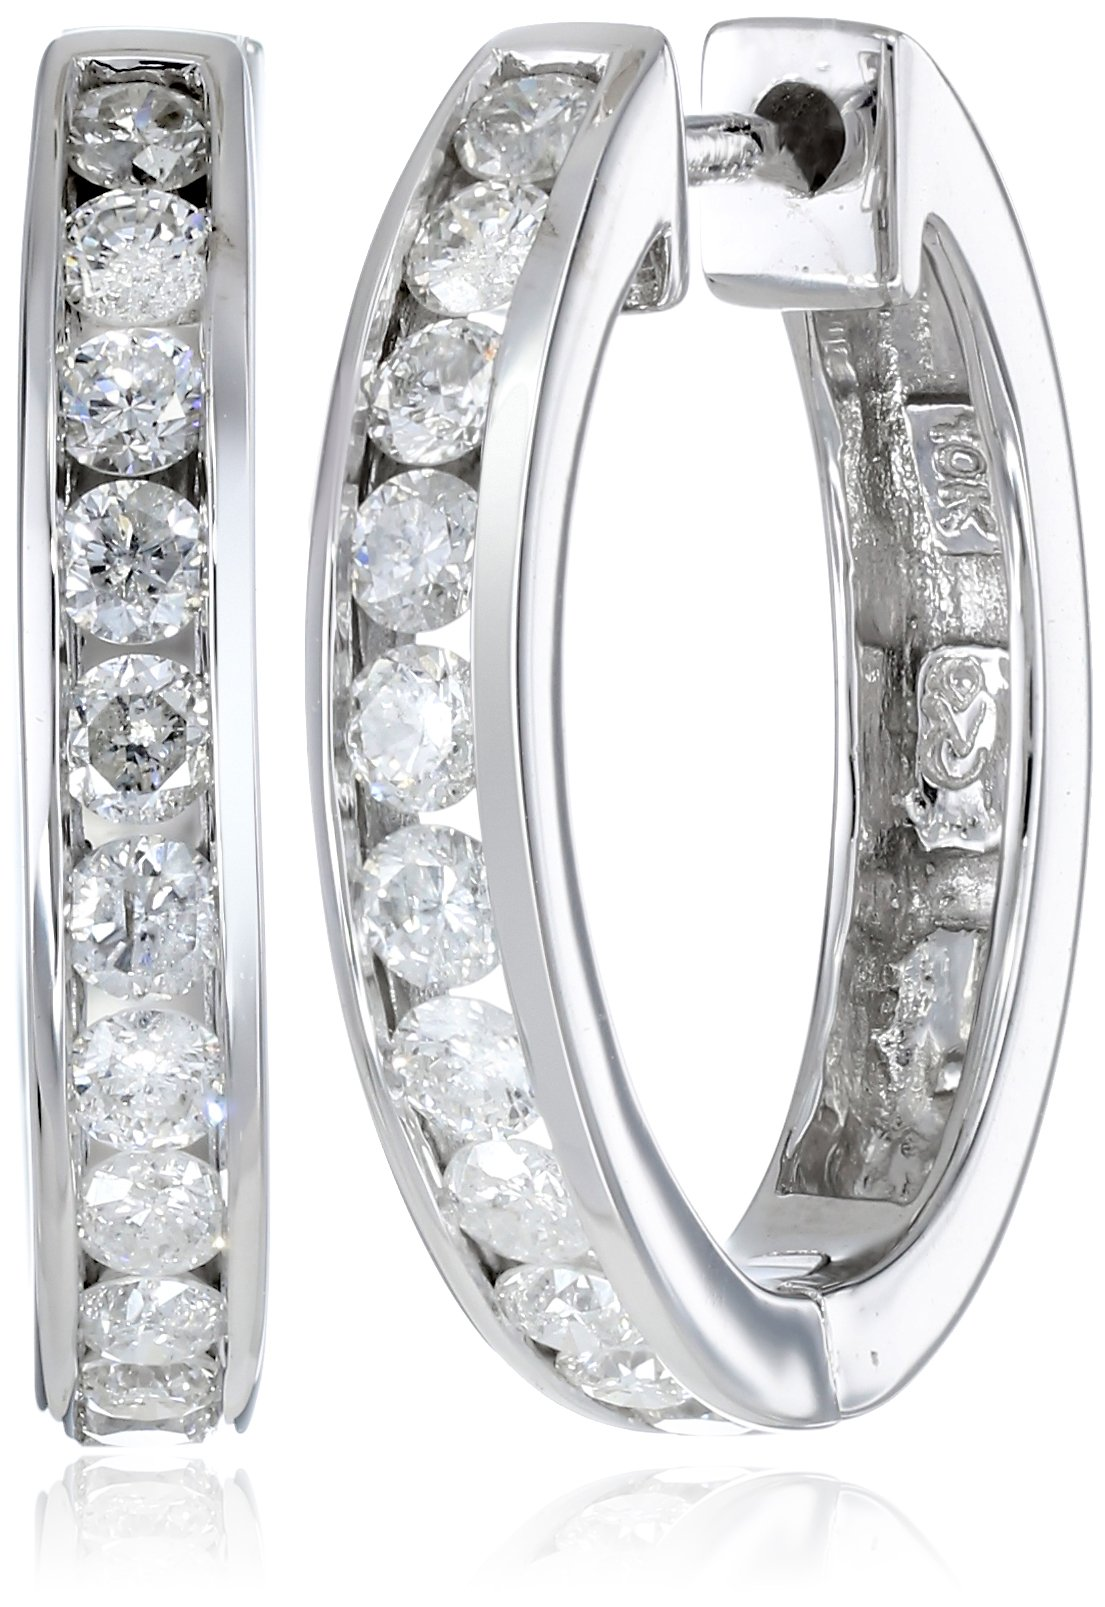 10k White Gold Channel-Set Diamond Hoop Earrings (3/4 cttw, H-I Color, I2-I3 Clarity)